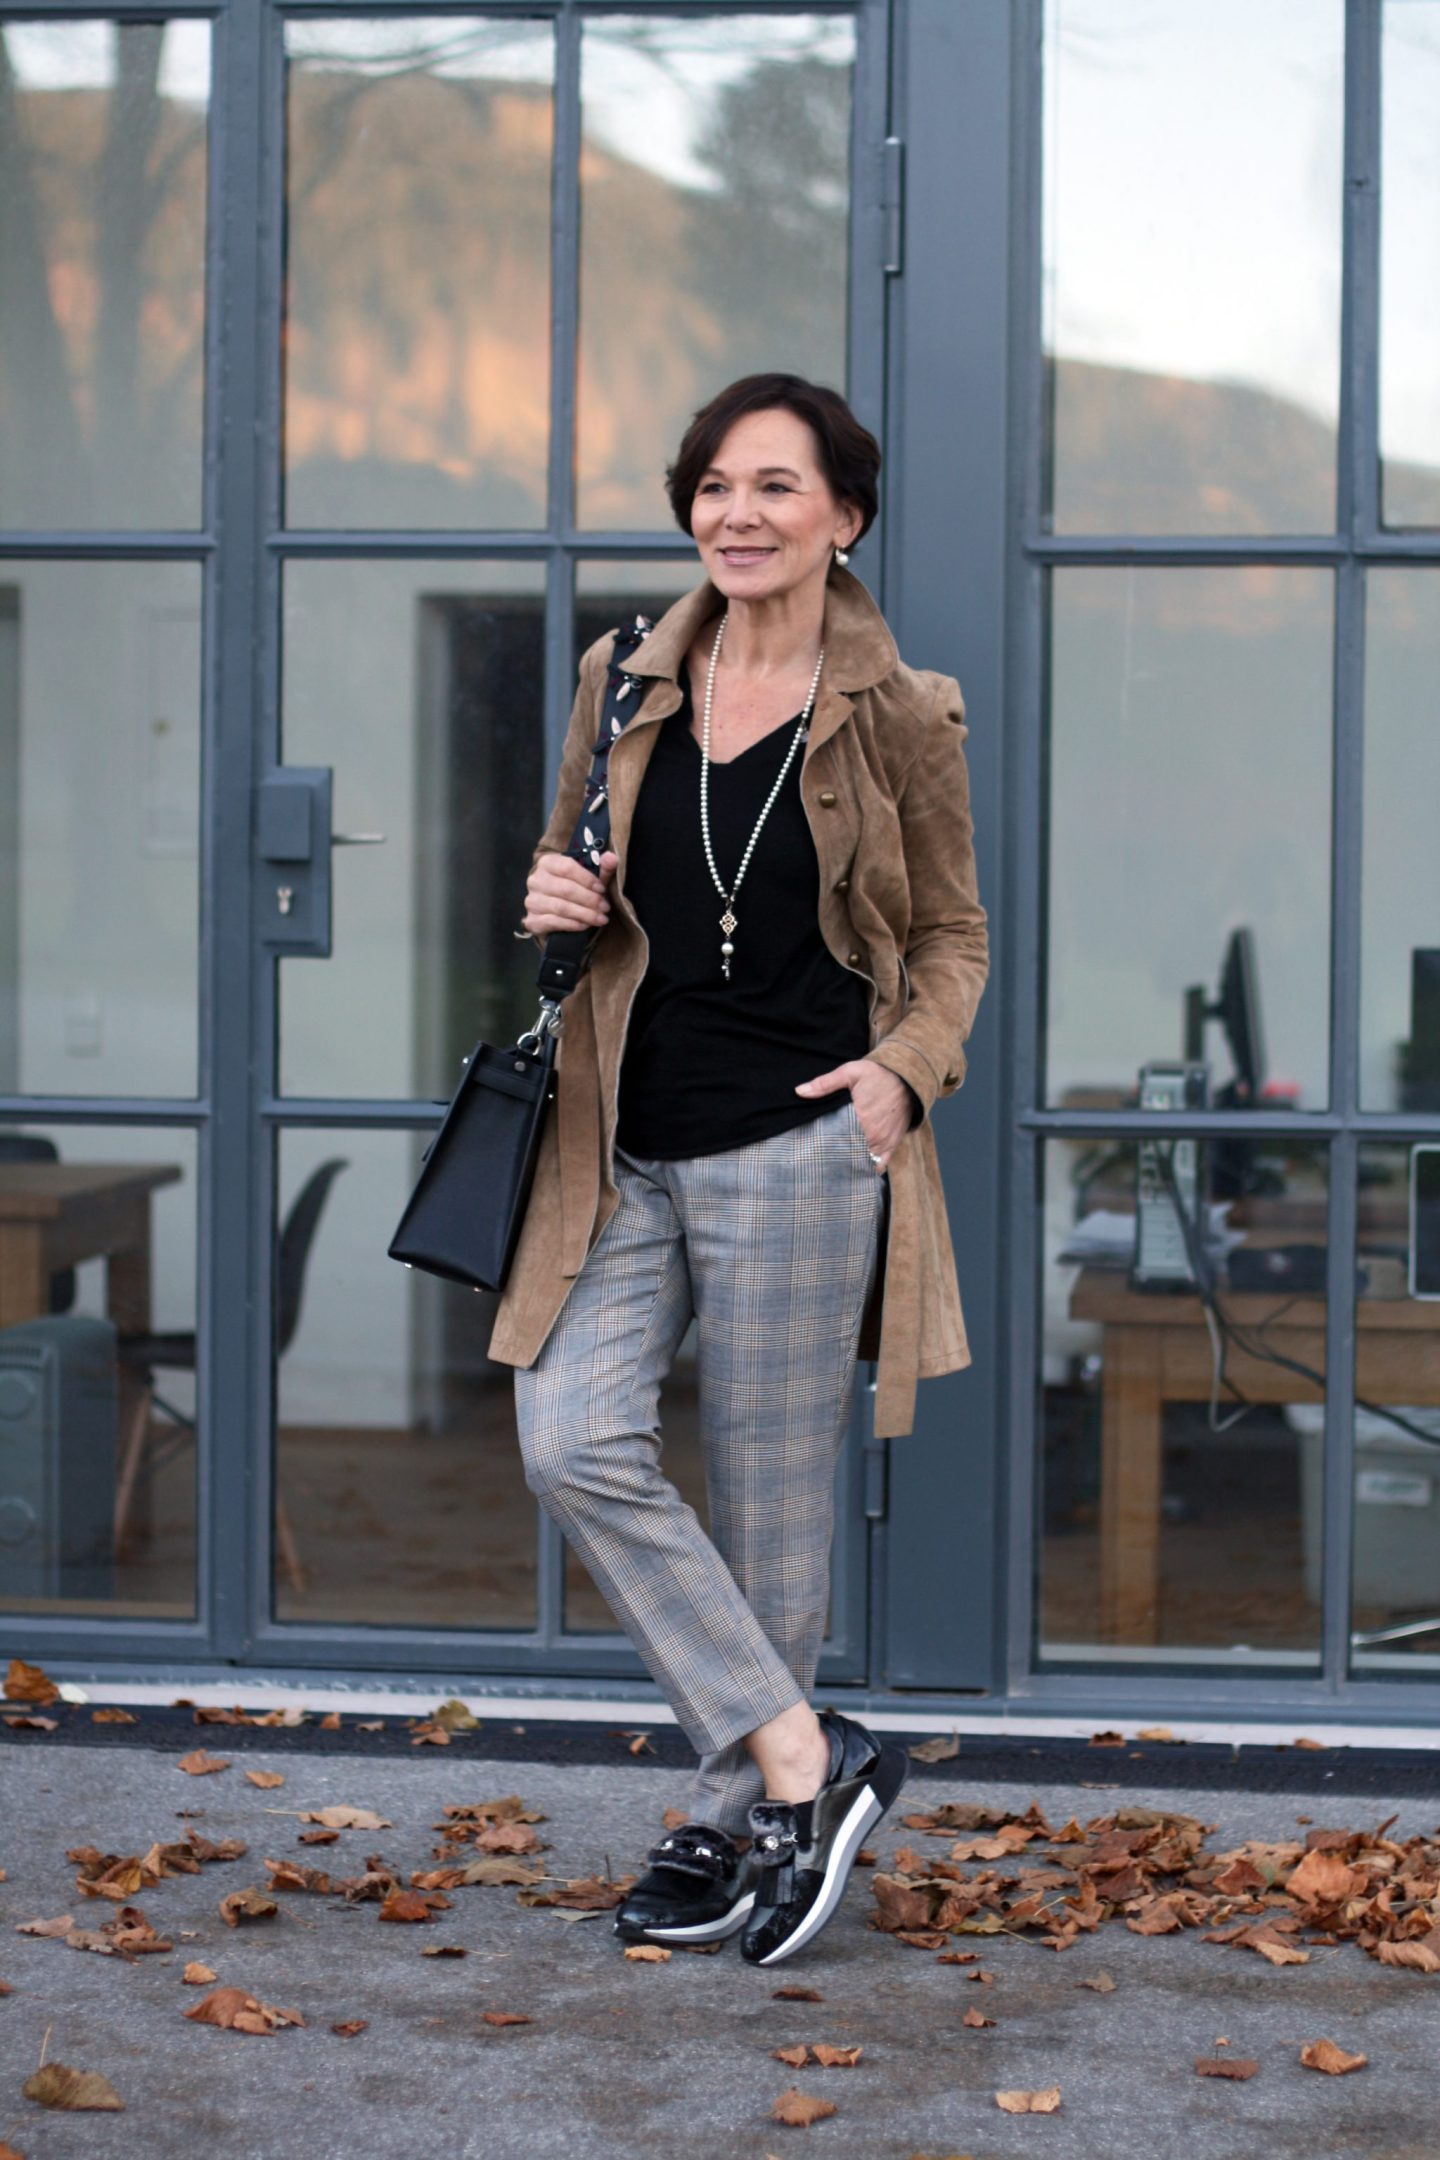 Lässiger, easy-chicc Look mit Glencheckhose, coolen Sneakers und Wildledermantel 50plus LadyofStyle